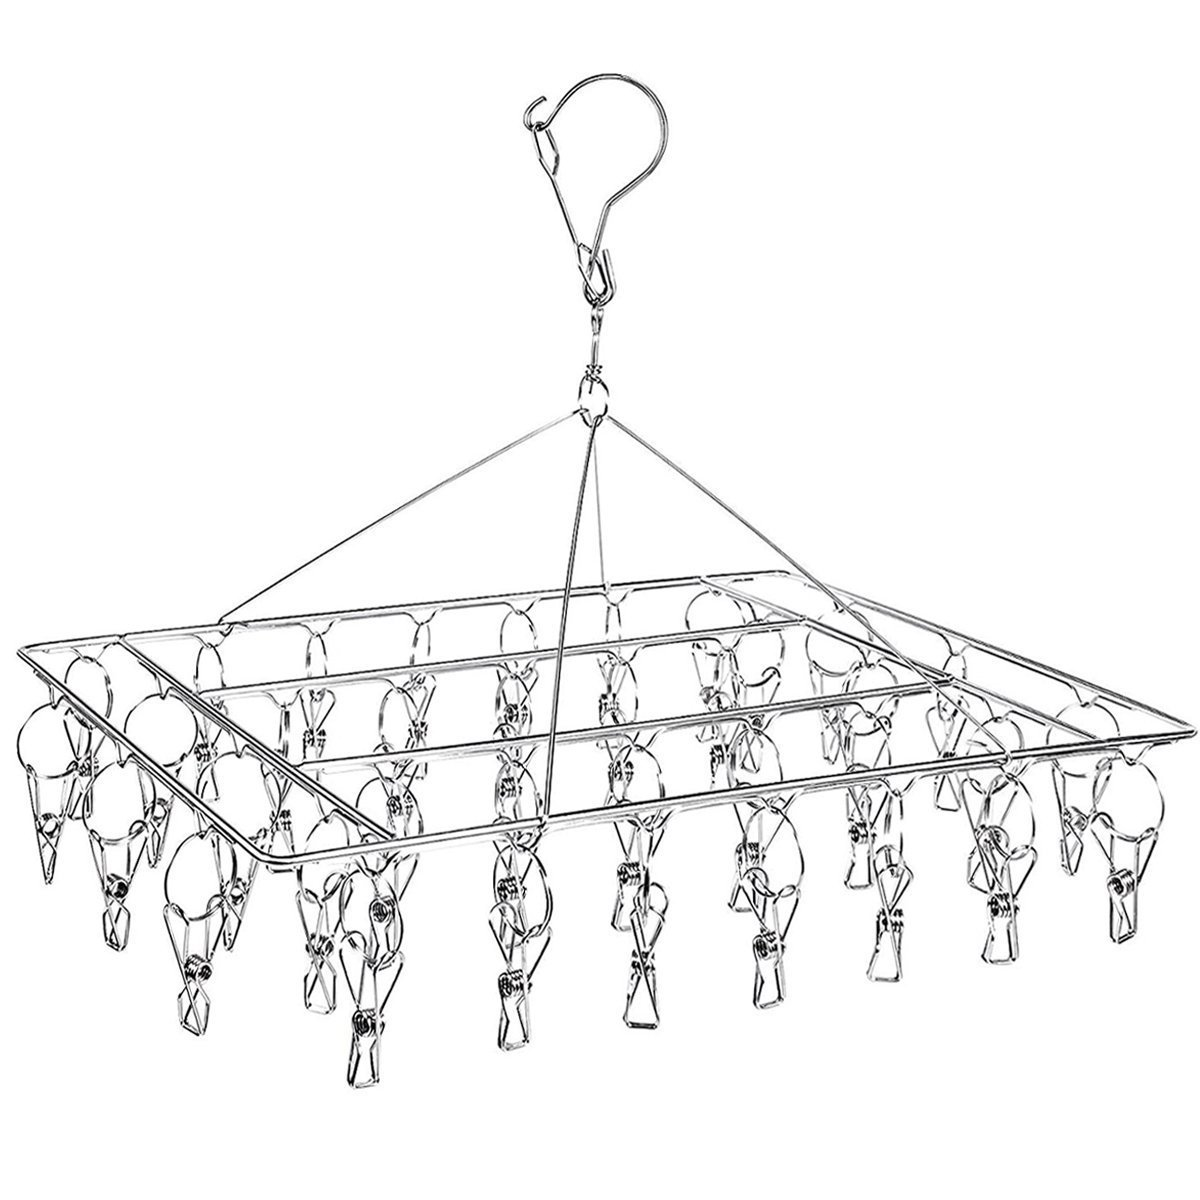 Sock Drying Racks with 30pcs Laundry Pegs Laundry Drip Hanger Laundry Clothesline Hanging Rack Metal Clothespins Rectangle for Drying Baby Clothes, Towels, Underwear, Lingerie, Delicate Bras Kereith wsb180036UK